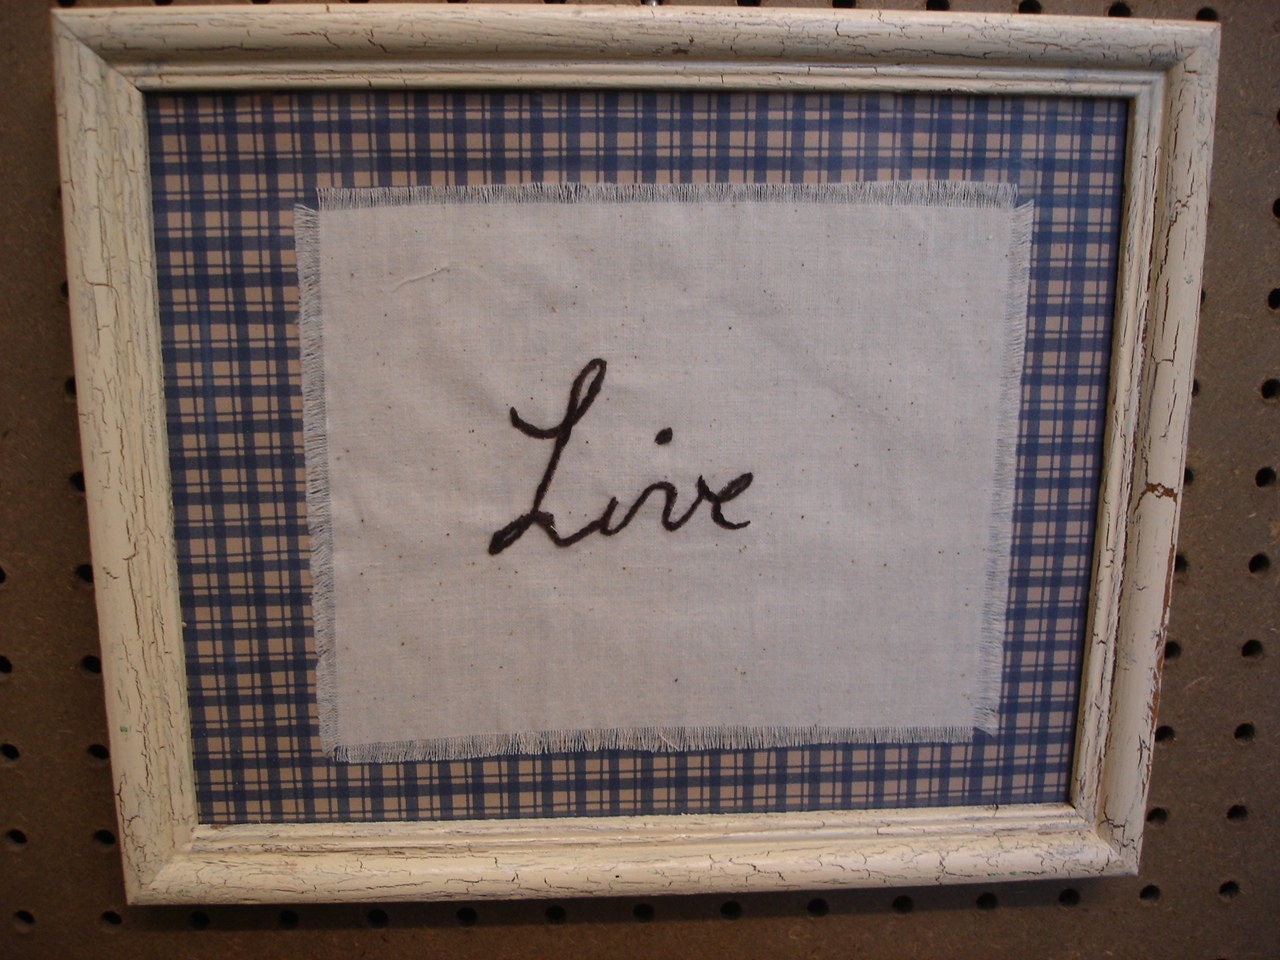 Inspiring,Phrases,Love,Hand,Stitched,Wall,Decor,Framed,Housewares,Home_Decor,home_decor,phrase,hand_stitch,inspiring,inspire,frame,framed_phrase,for_your_home,wall_decor,gift,houseware,reclaimed,wood,paper,fabric